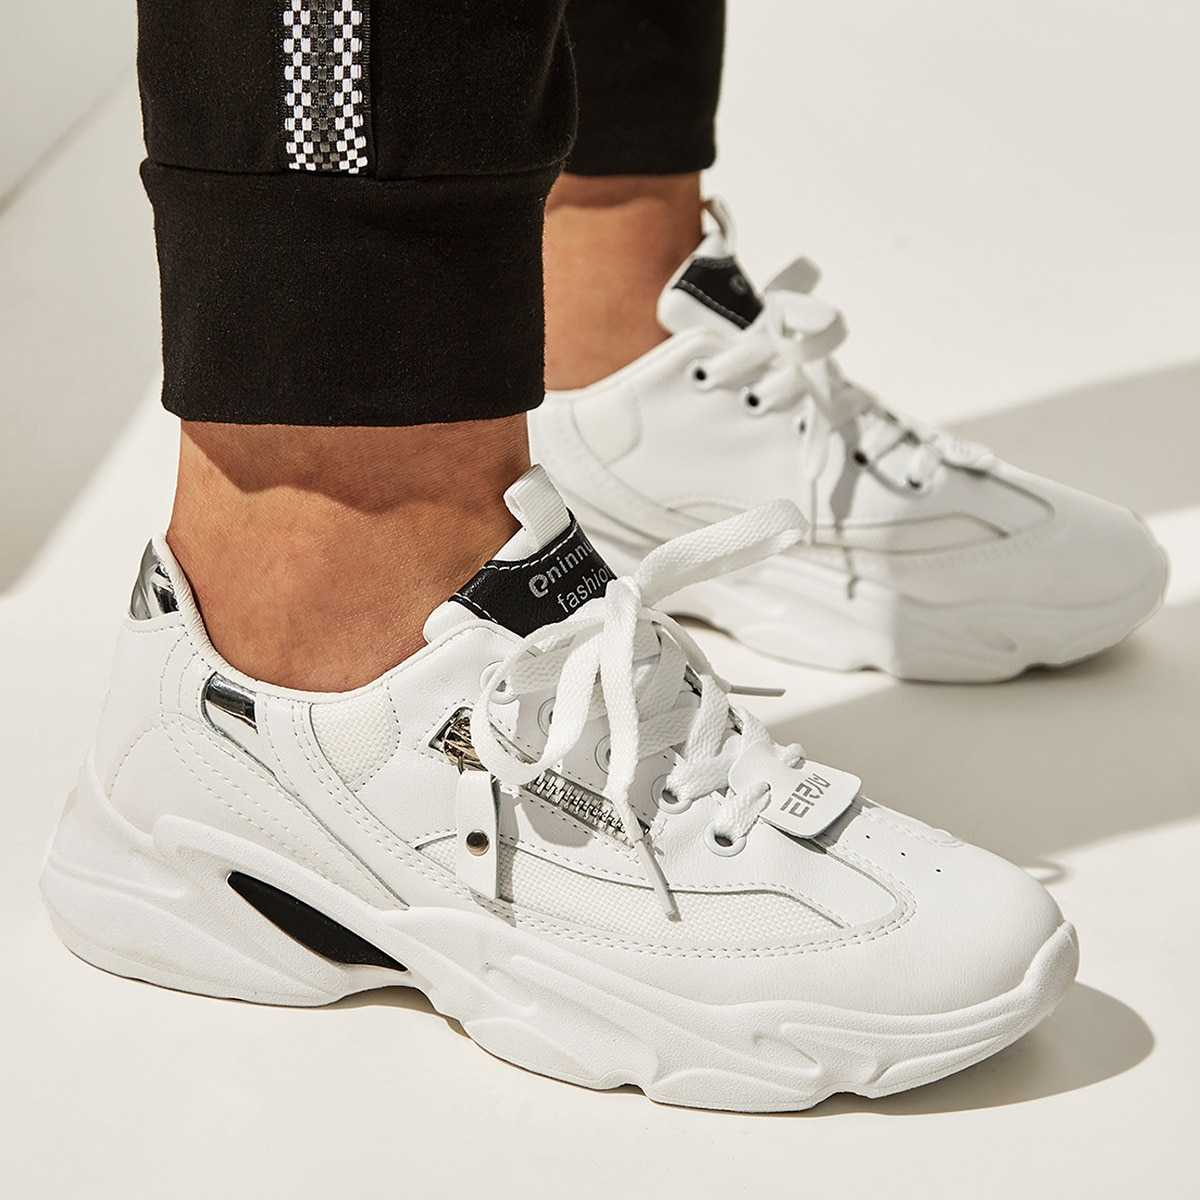 Lace-up Front Zip Decor Trainers in White by ROMWE on GOOFASH